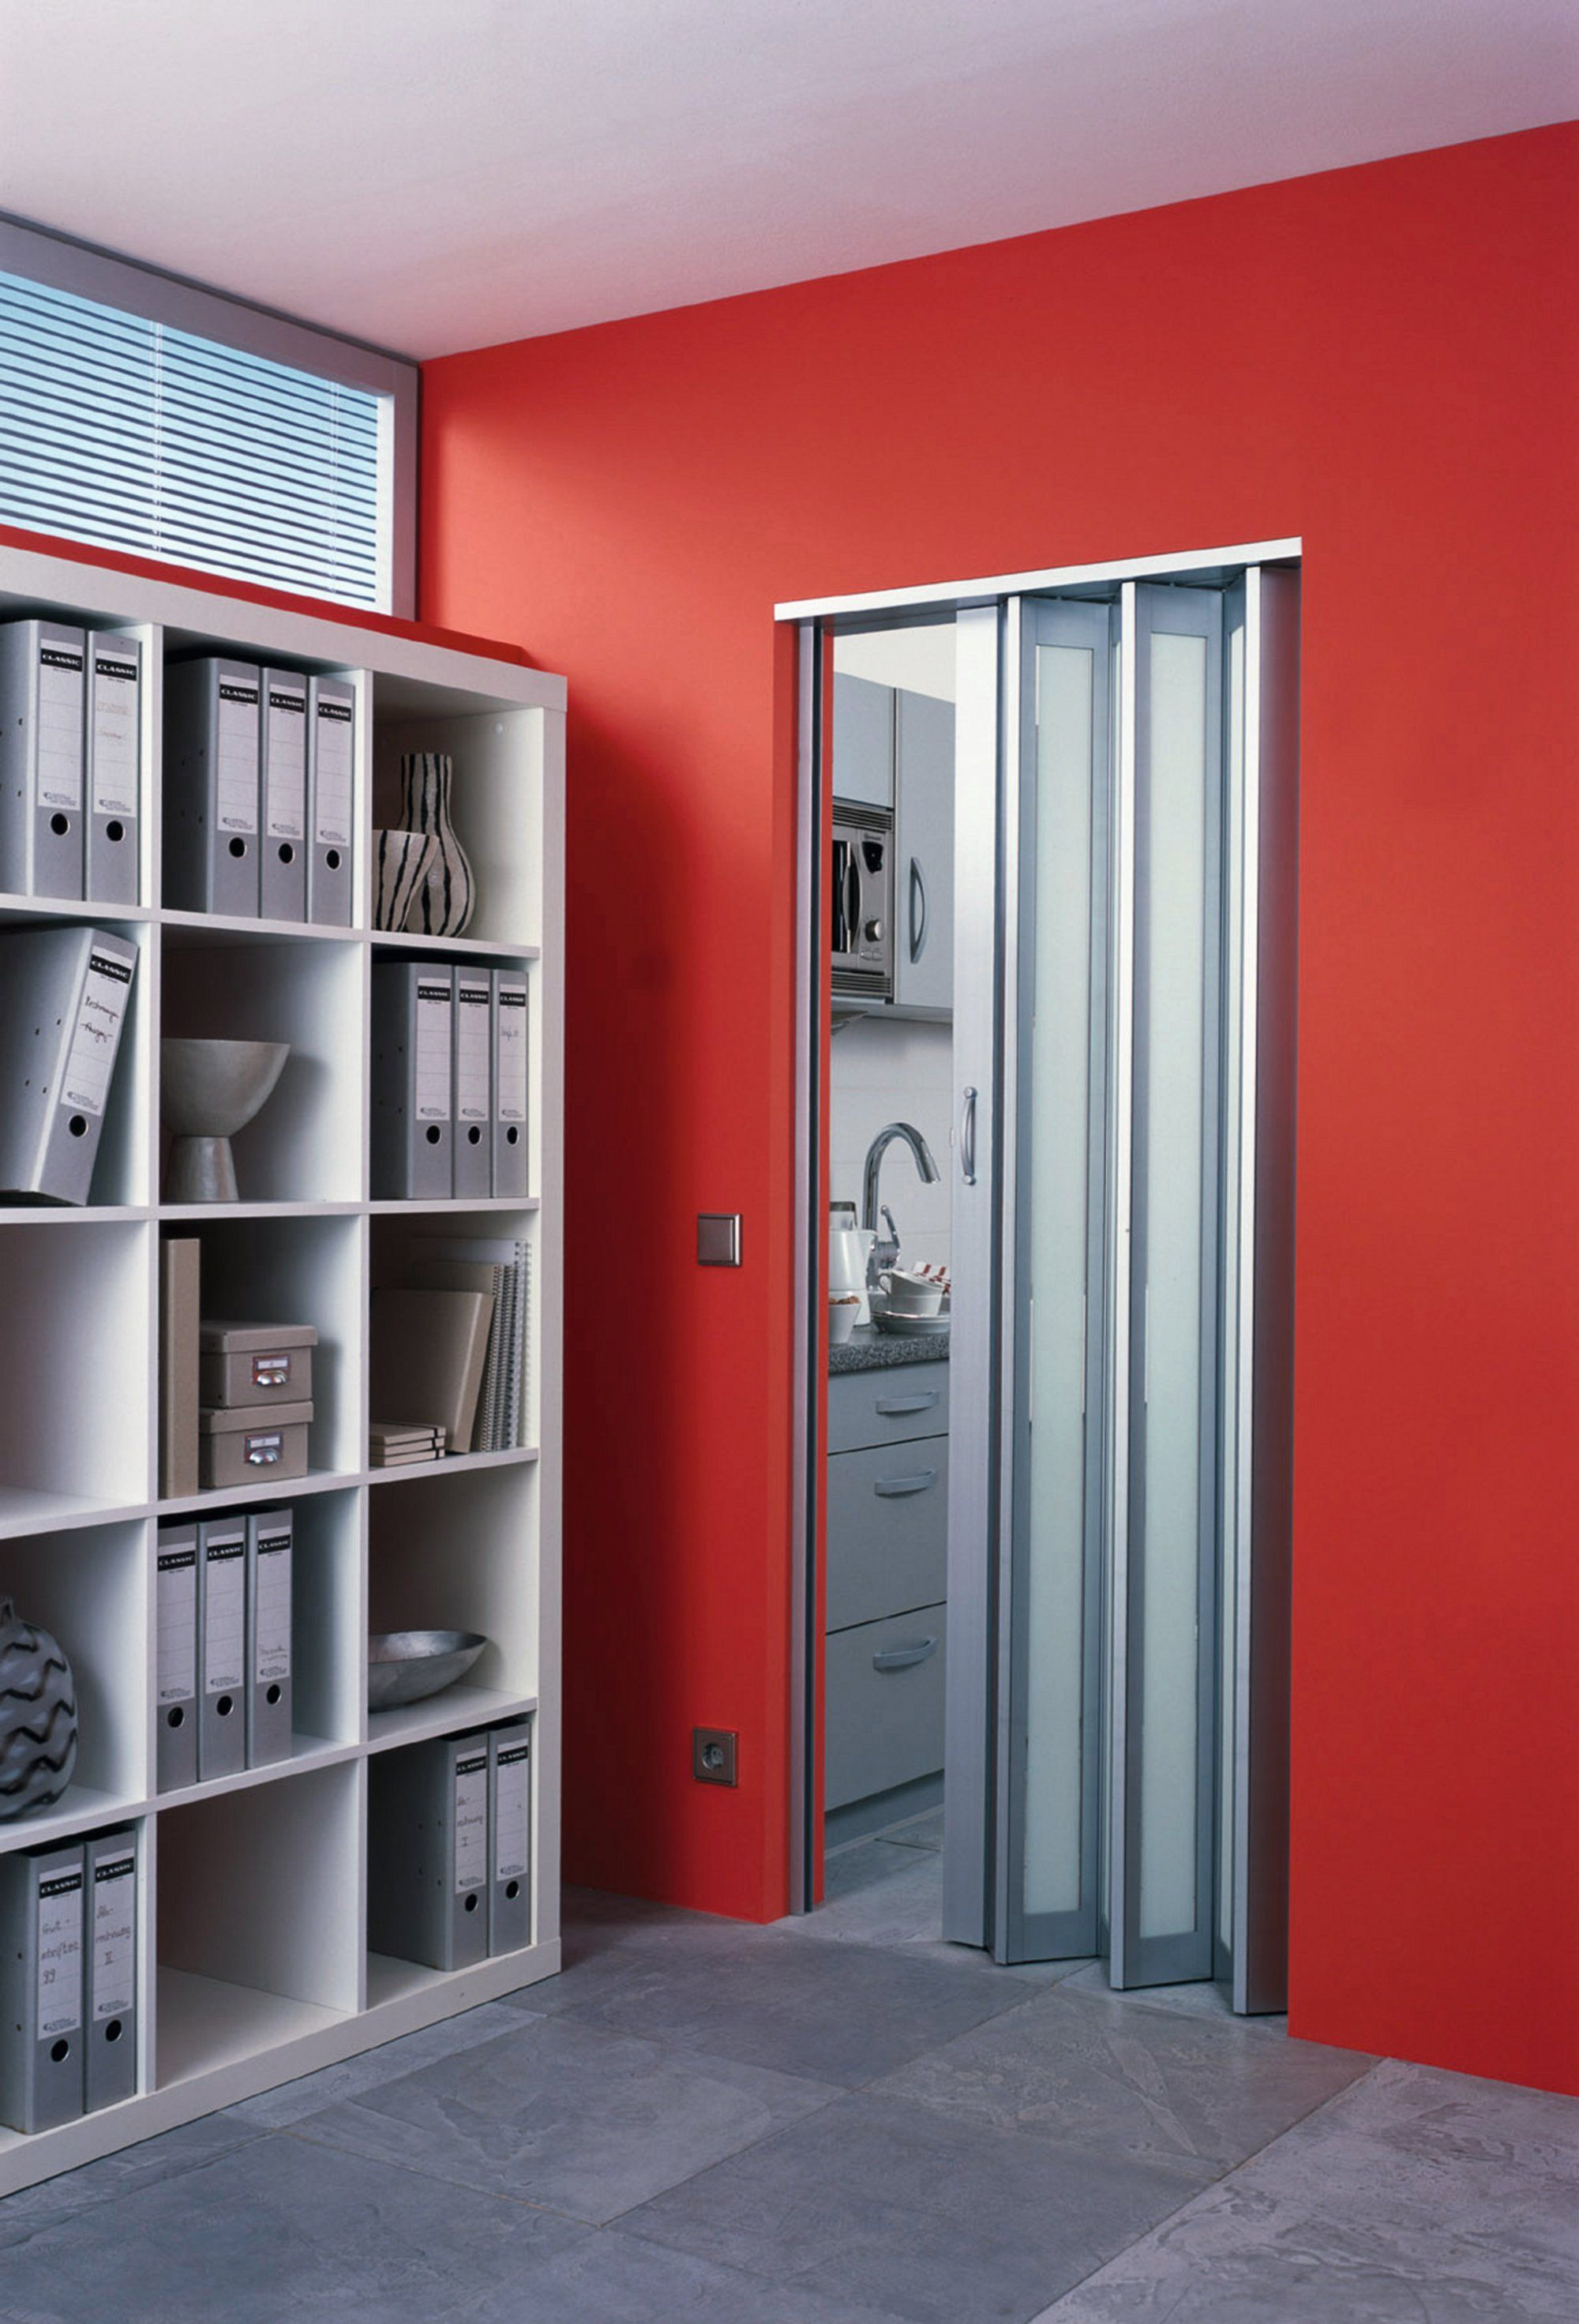 Accordion Bathroom Doors ultra modern in style. halo™ aluminum accordion door from the